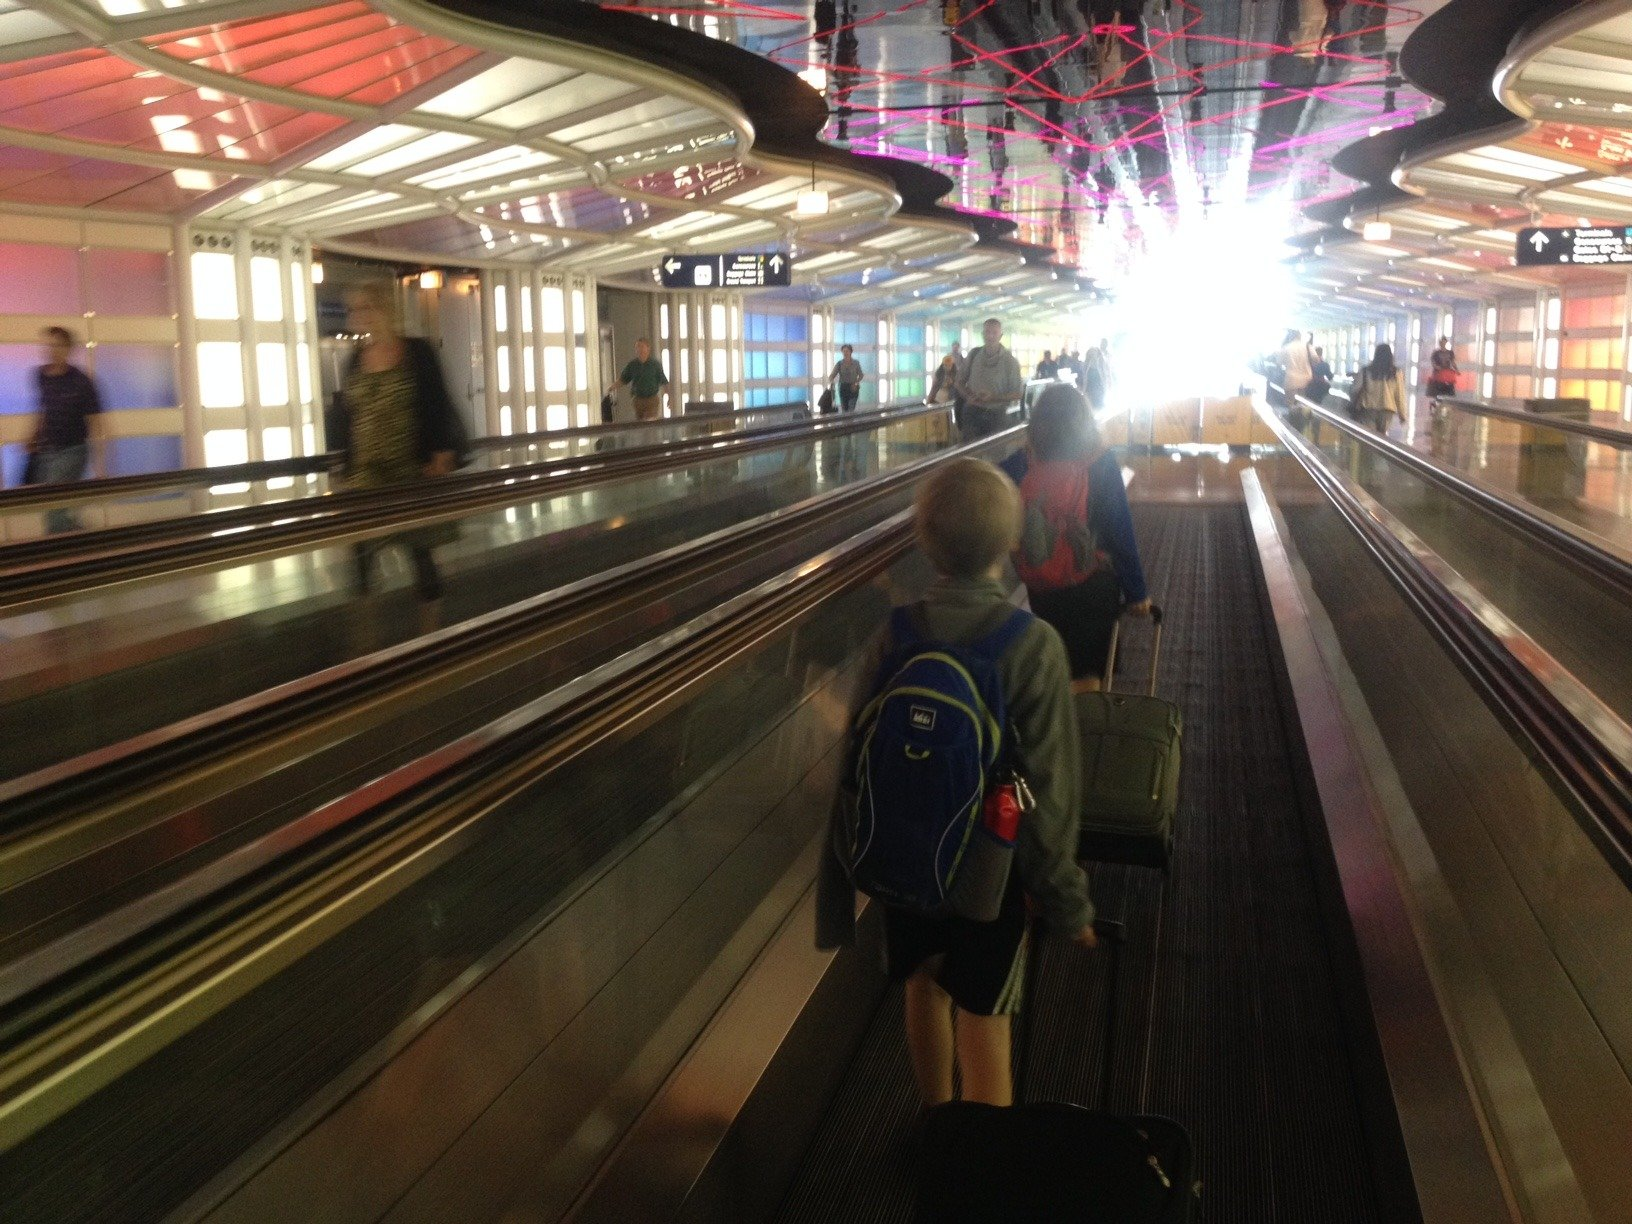 California to DC via Montana: Moving sidewalk in Chicagos OHare airport